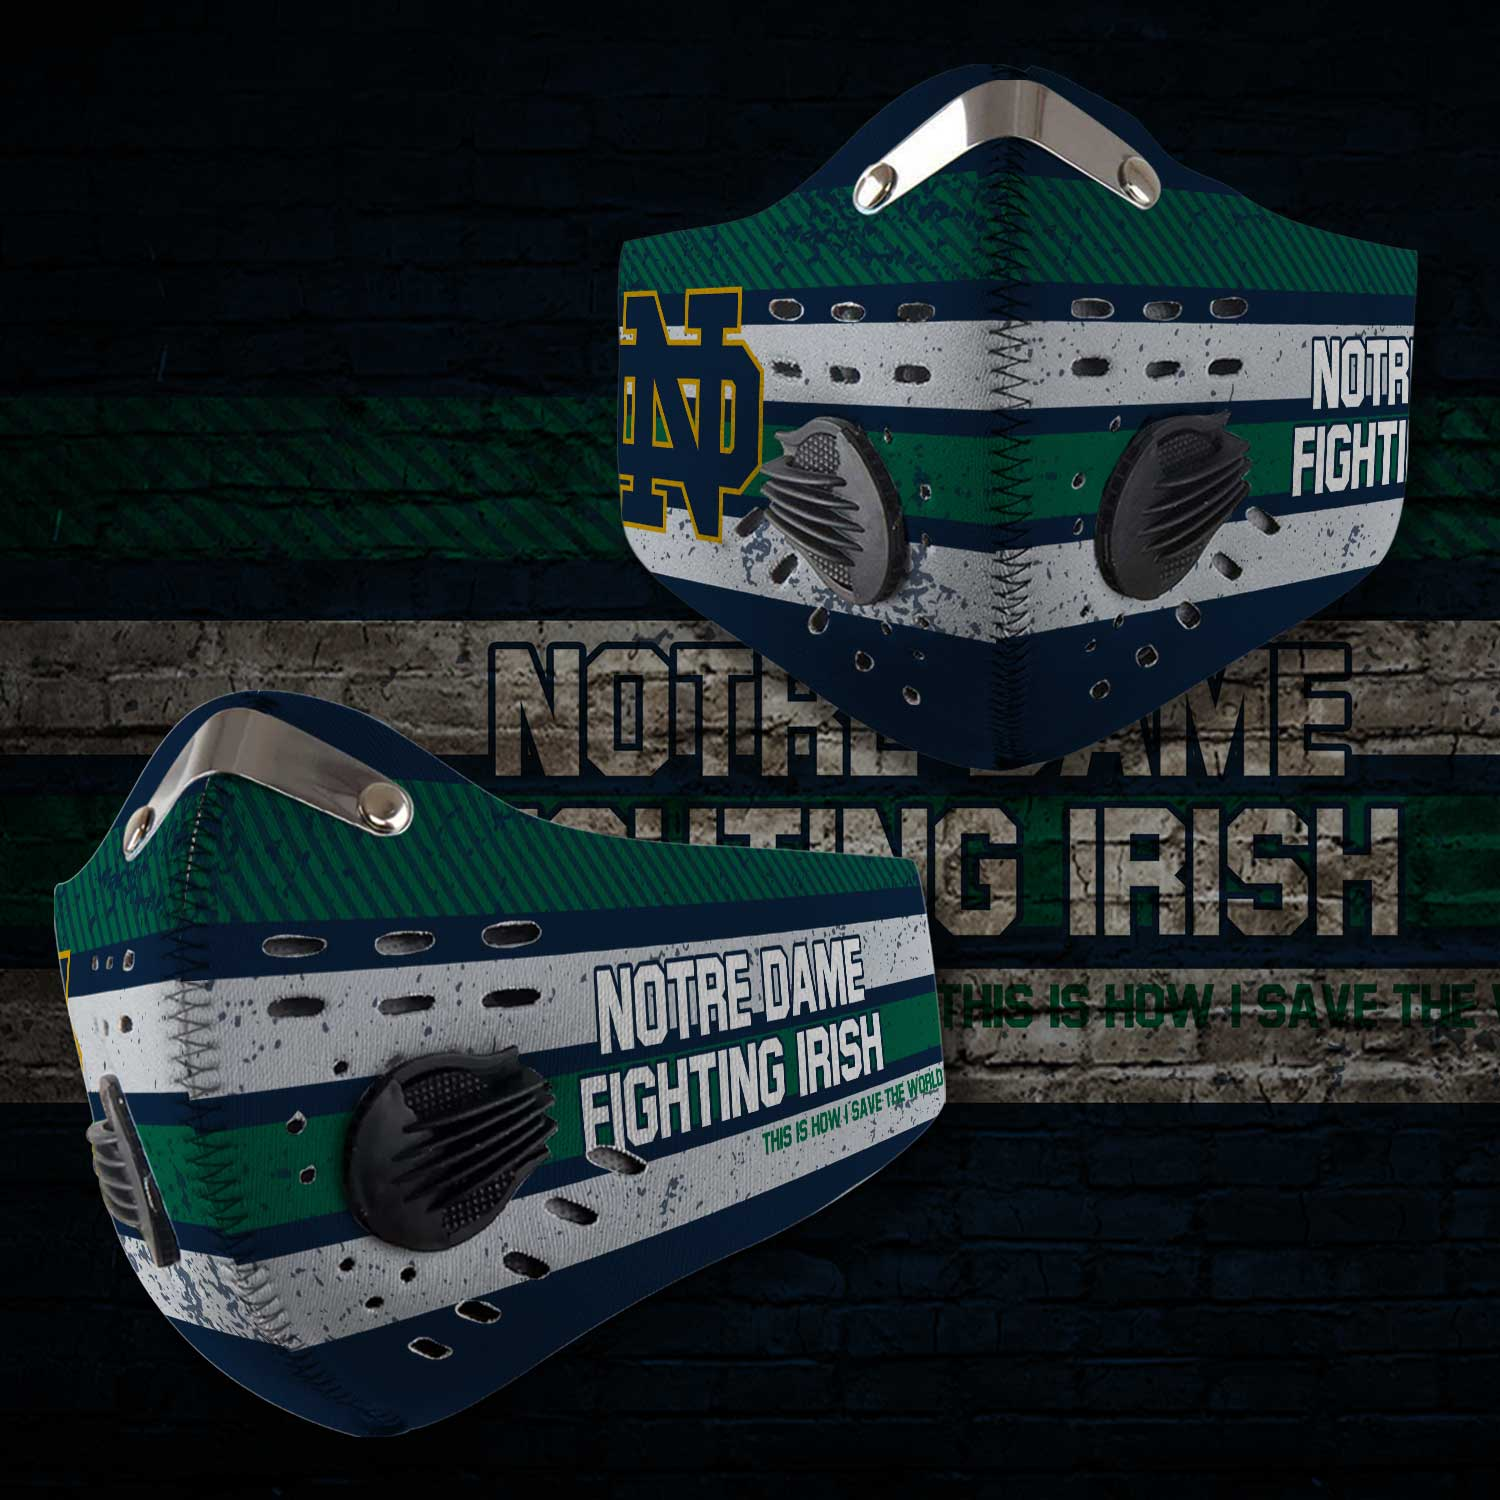 Notre dame fighting irish this is how i save the world face mask 2